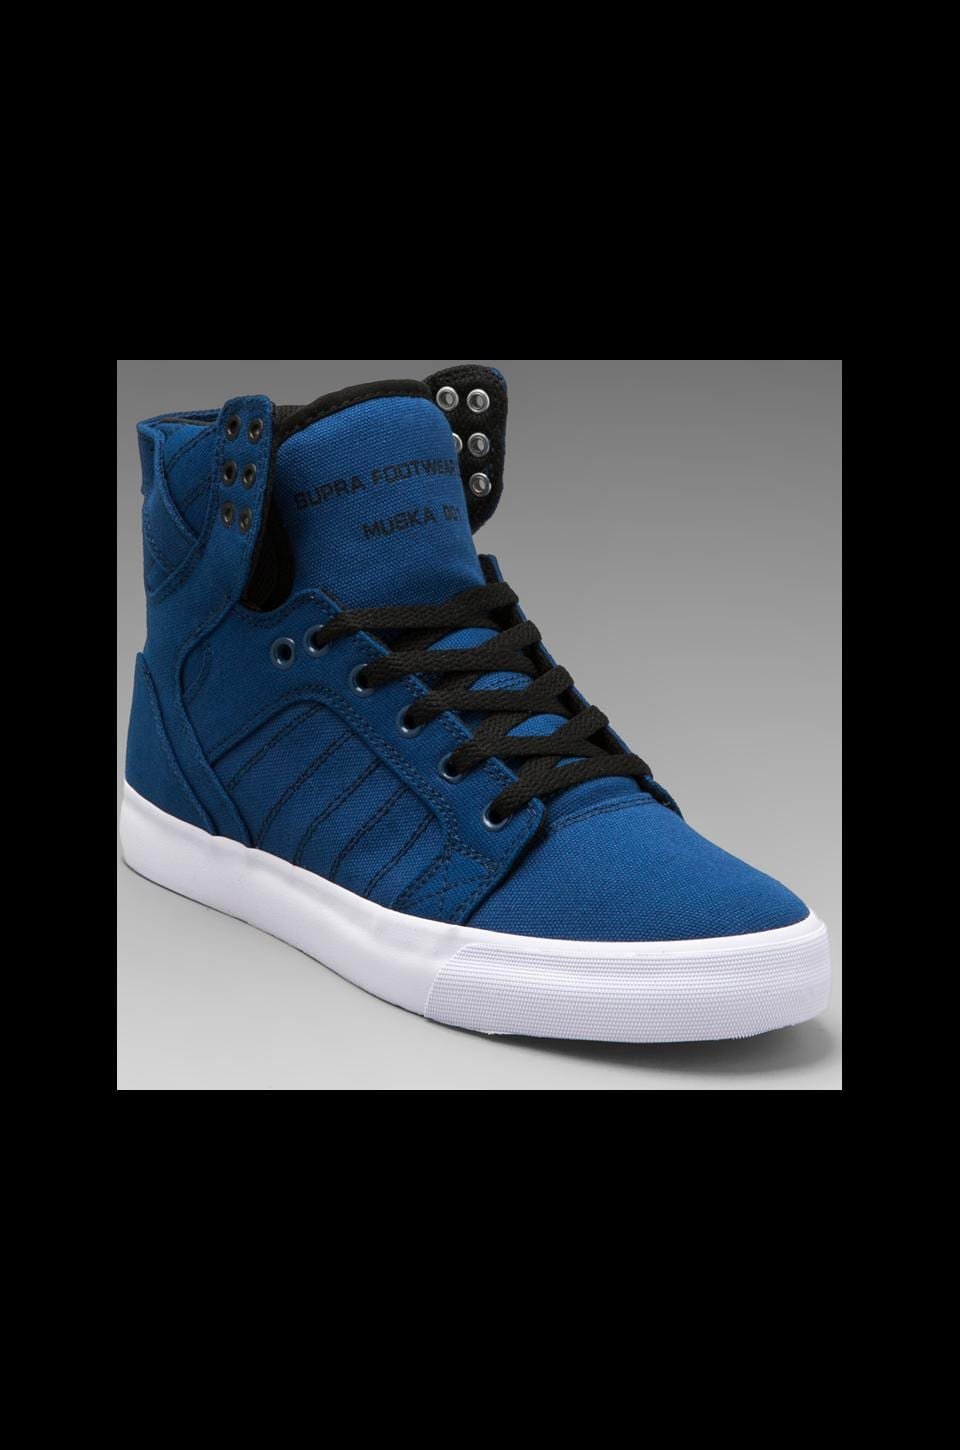 Supra Skytop in Navy/Black